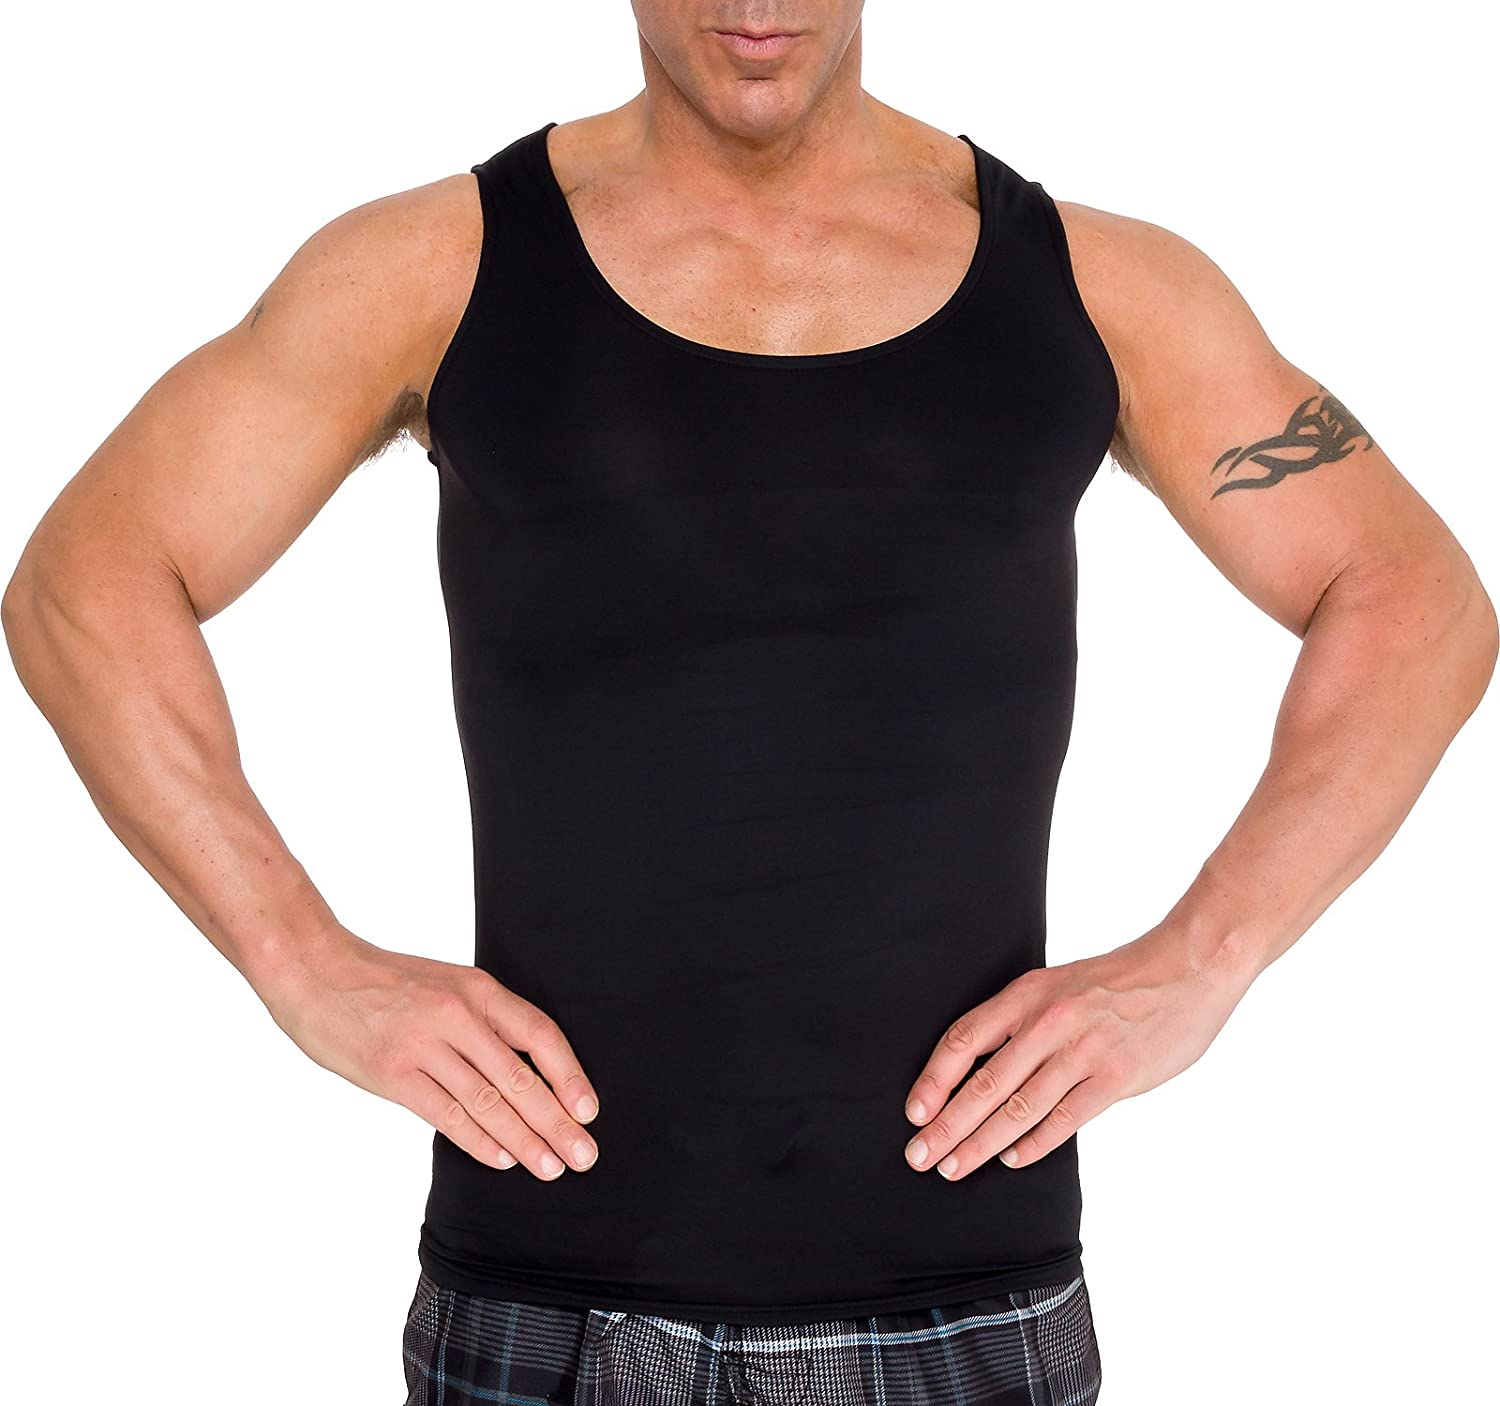 118d5cbb7d Amazon.com: LISH Men's Slimming Light Compression Tank Top Shirt -  Sleeveless Body Shaper Shirt for Weight Loss: Clothing